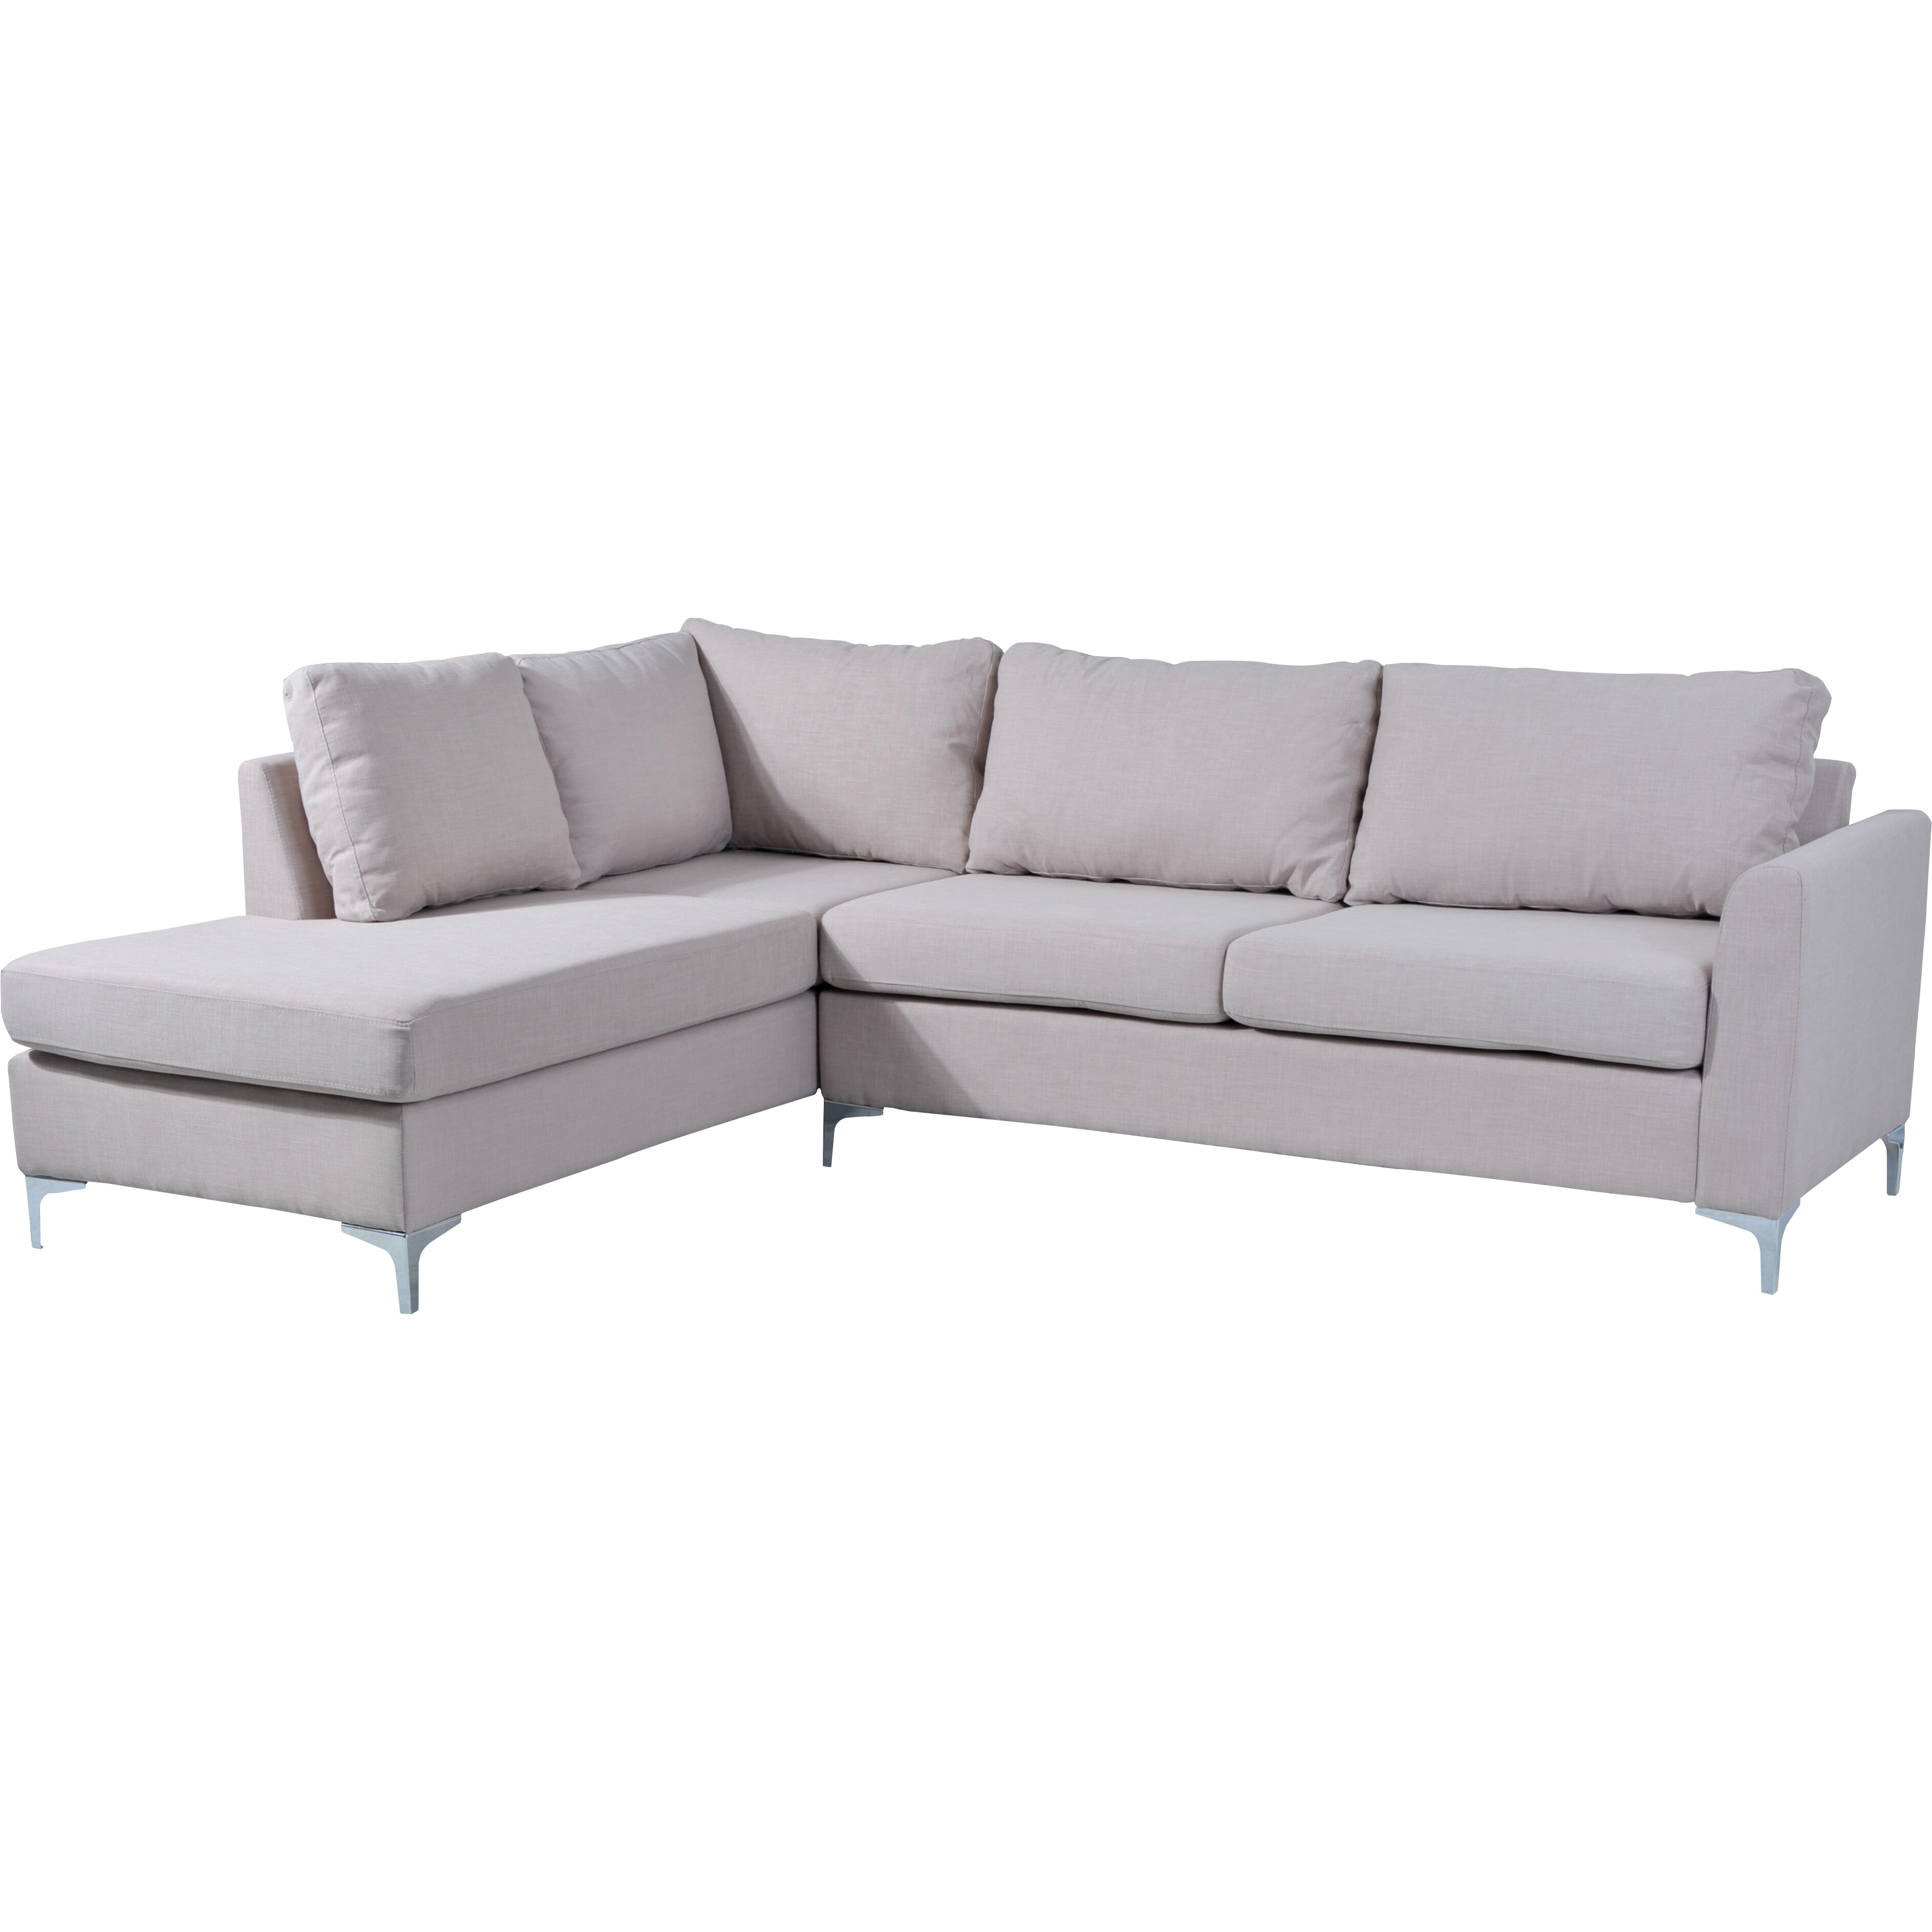 Sectional Sofa Couch Reversible Chaise Ottoman Furniture: NathanielHome Landon Reversible Chaise Sectional & Reviews